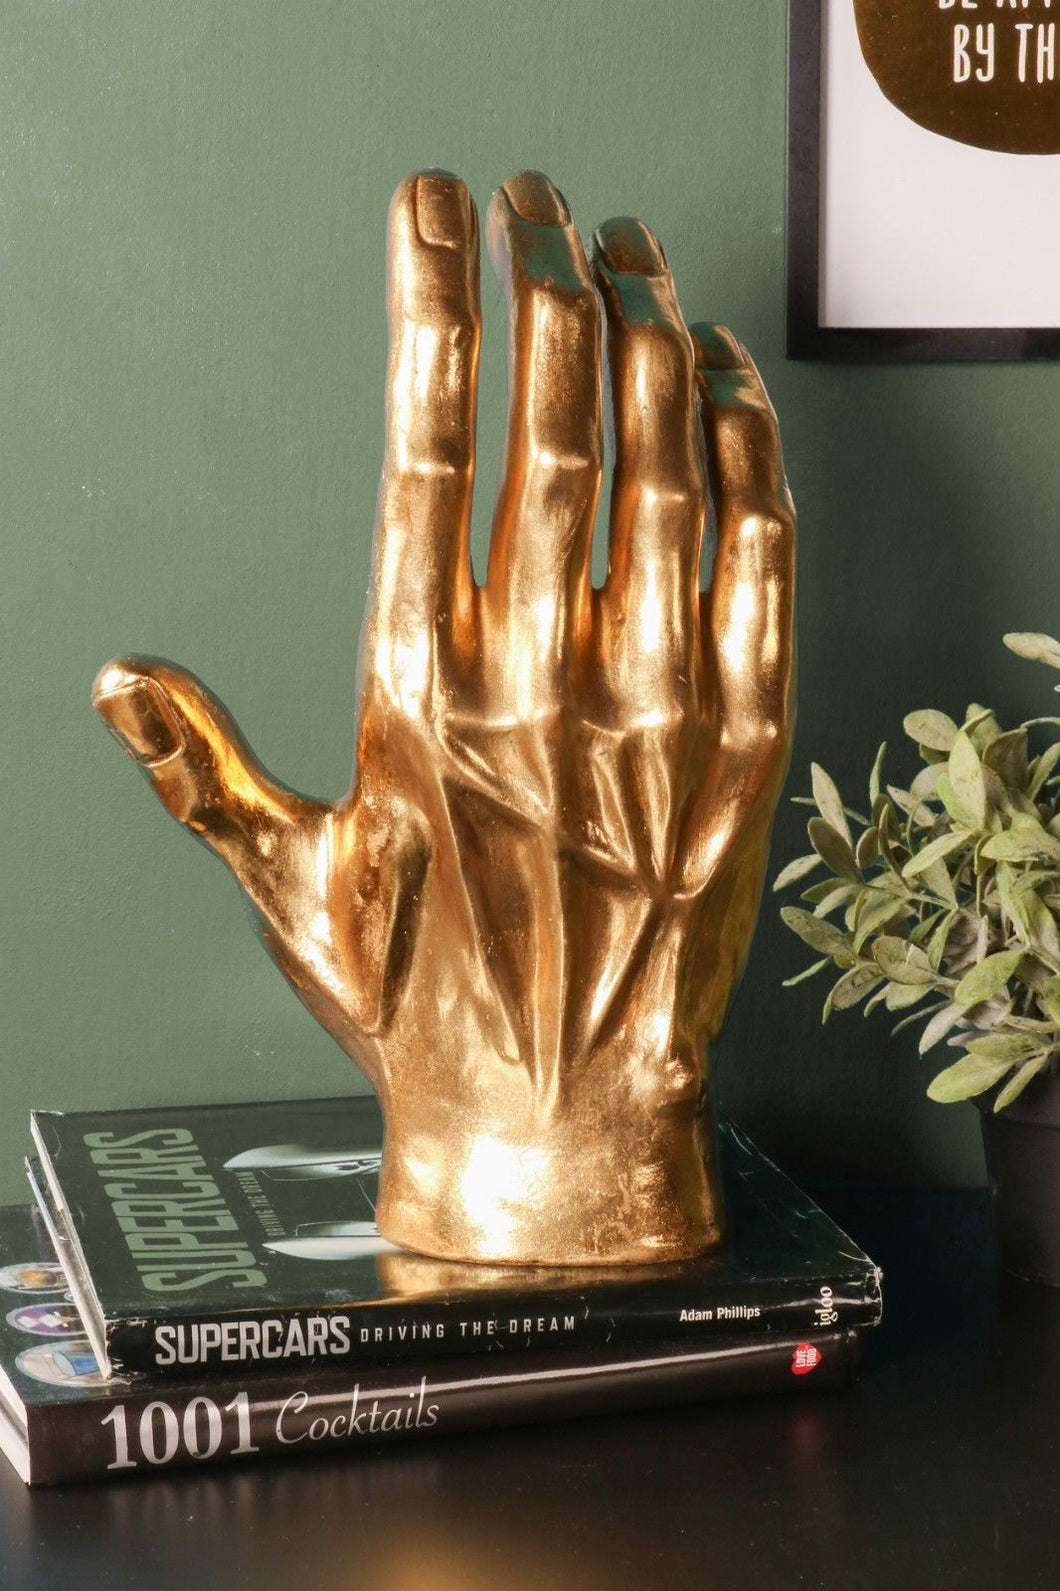 Large Gold Hand Decorative Home Ornament Resin Sculpture Gift - Whaleycorn